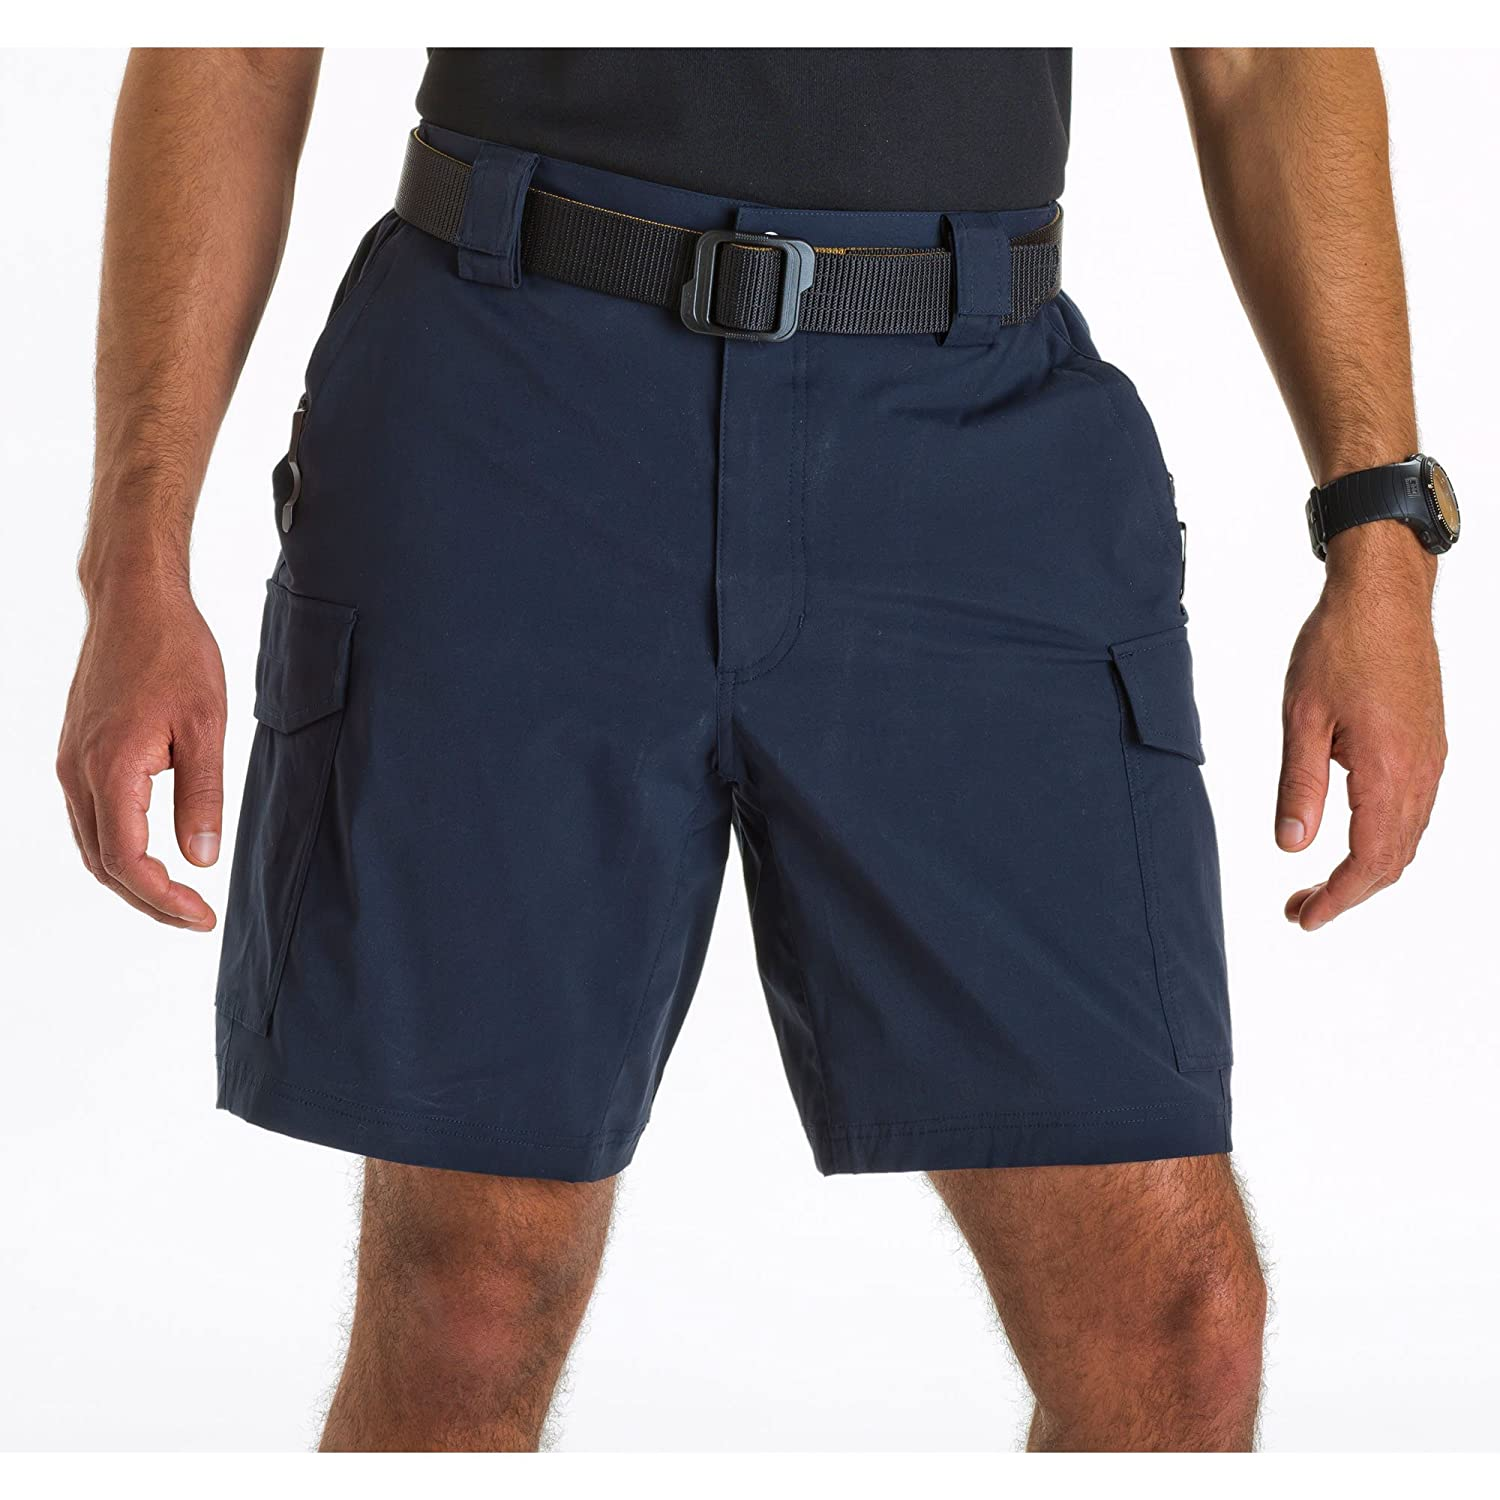 5.11 Tactical #43057 Bike Patrol Short 5-43057